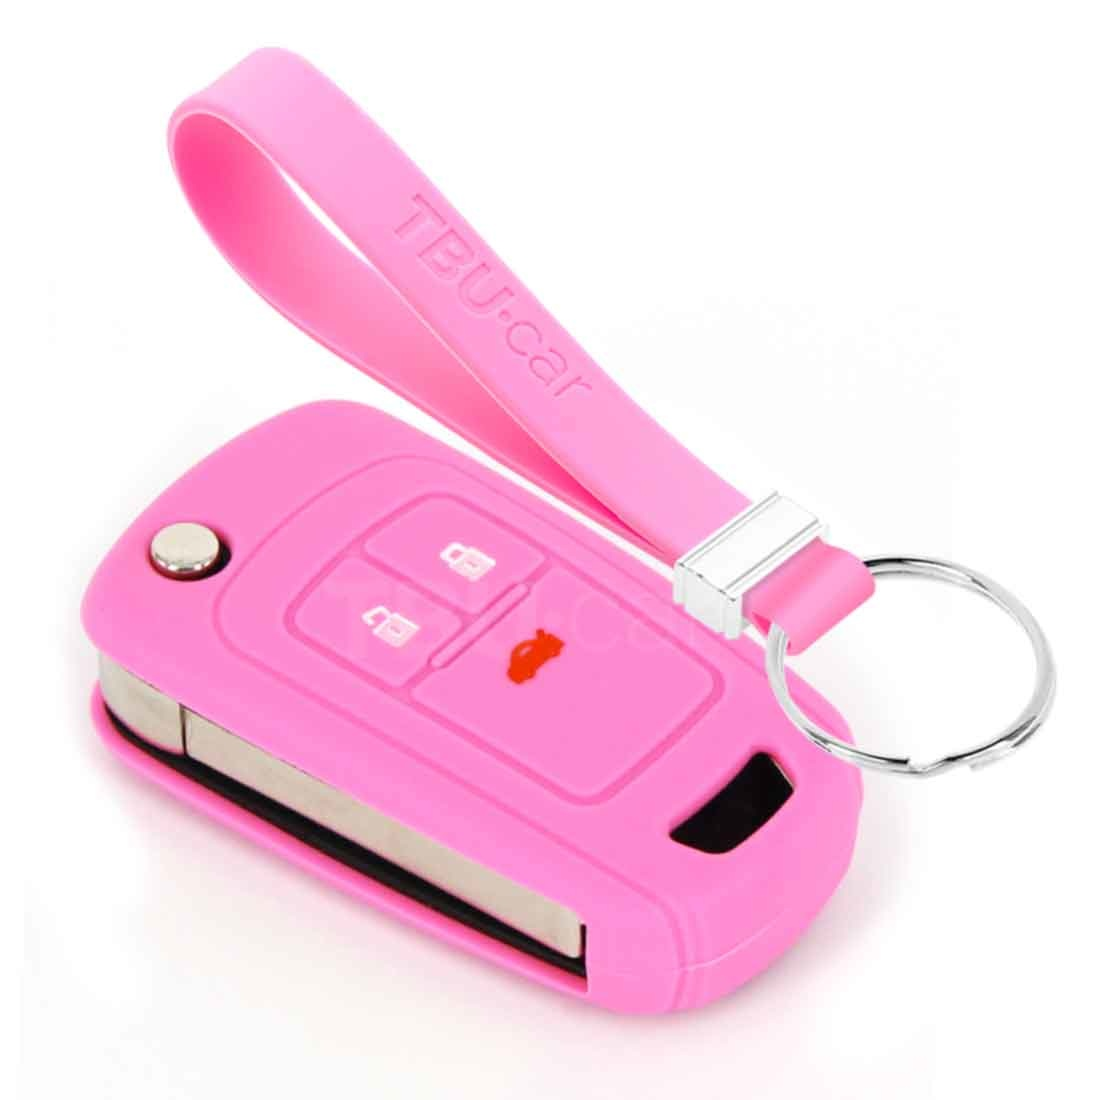 TBU car TBU car Car key cover compatible with Chevrolet - Silicone Protective Remote Key Shell - FOB Case Cover - Pink